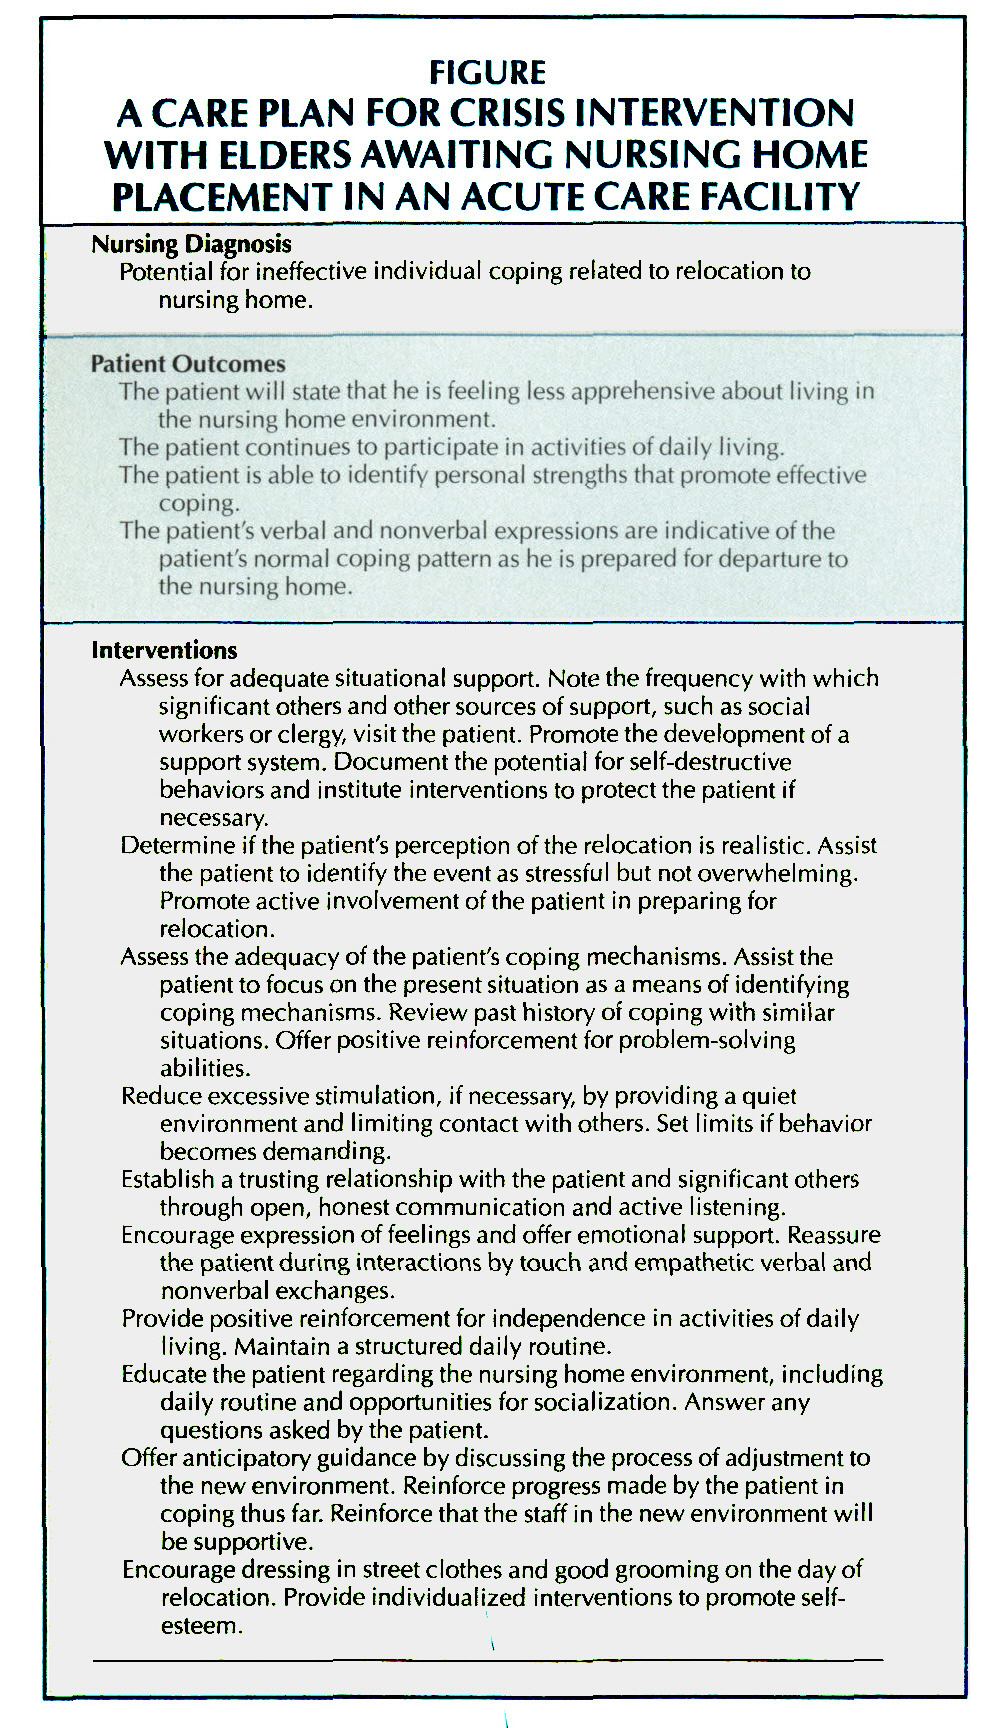 FIGUREA CARE PLAN FOR CRISIS INTERVENTION WITH ELDERS AWAITING NURSING HOME PLACEMENT IN AN ACUTE CARE FACILITY